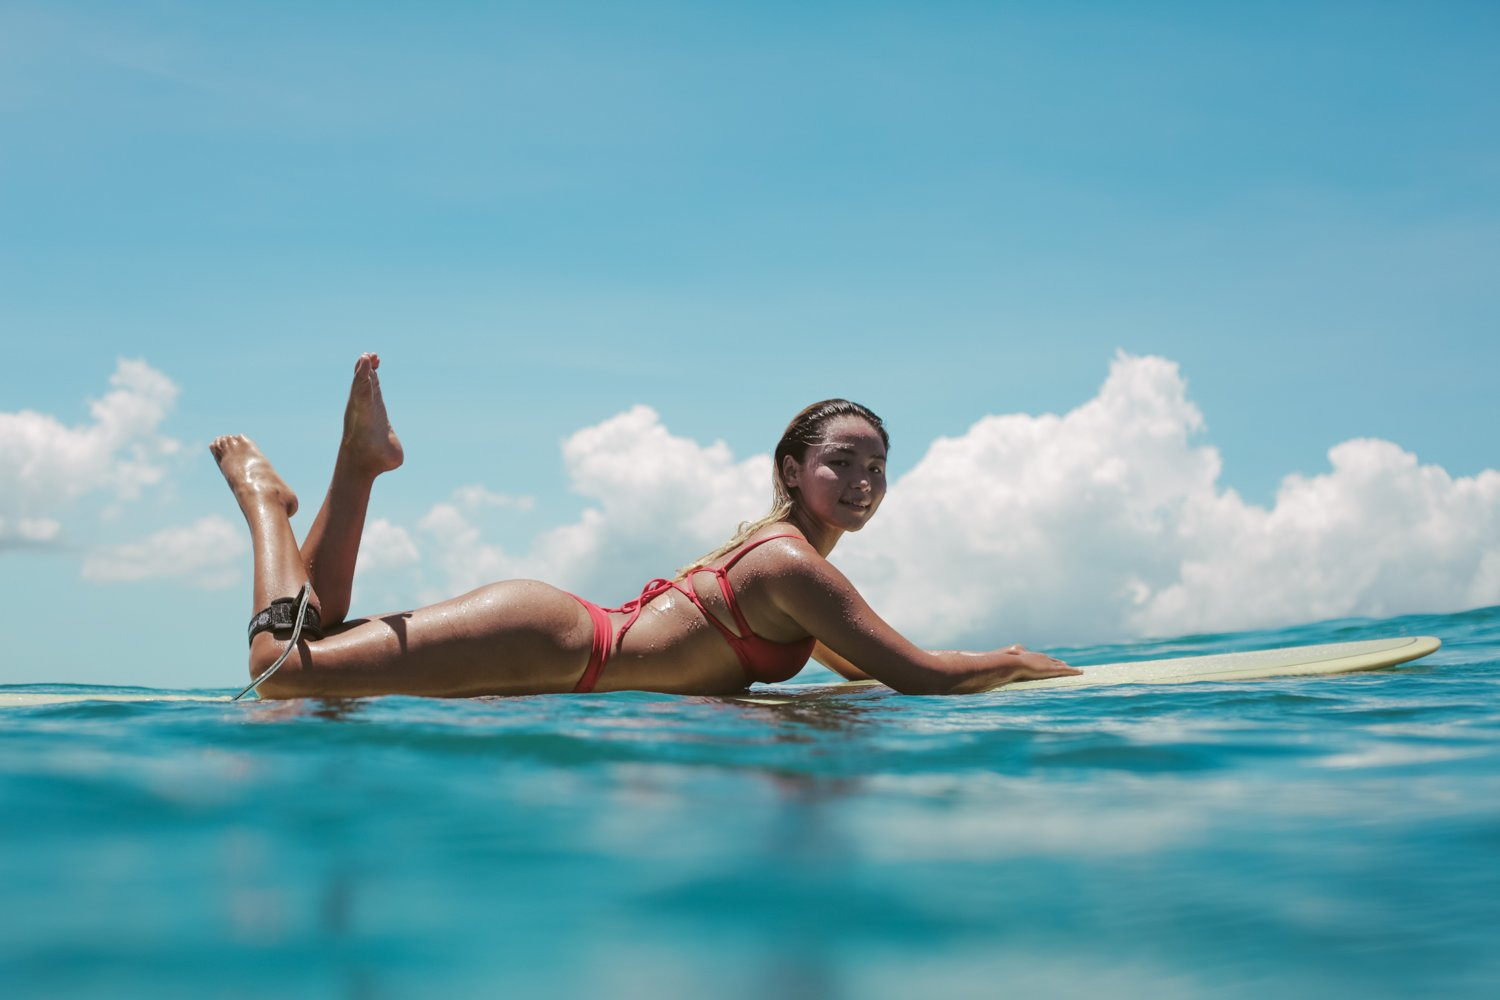 She's created a bikini brand for surfers, and she just raised seed funding